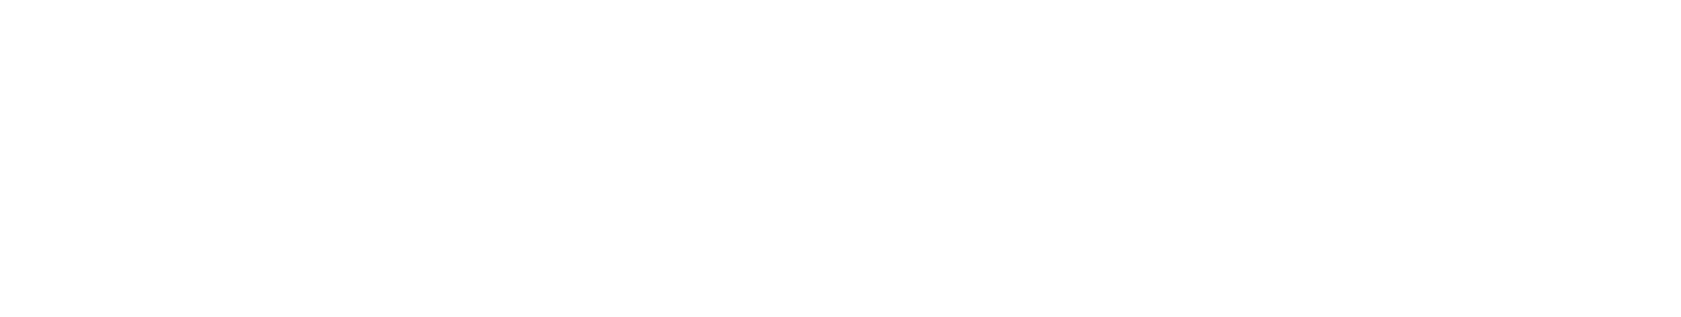 Compassionate Christmas logo 2 white.png